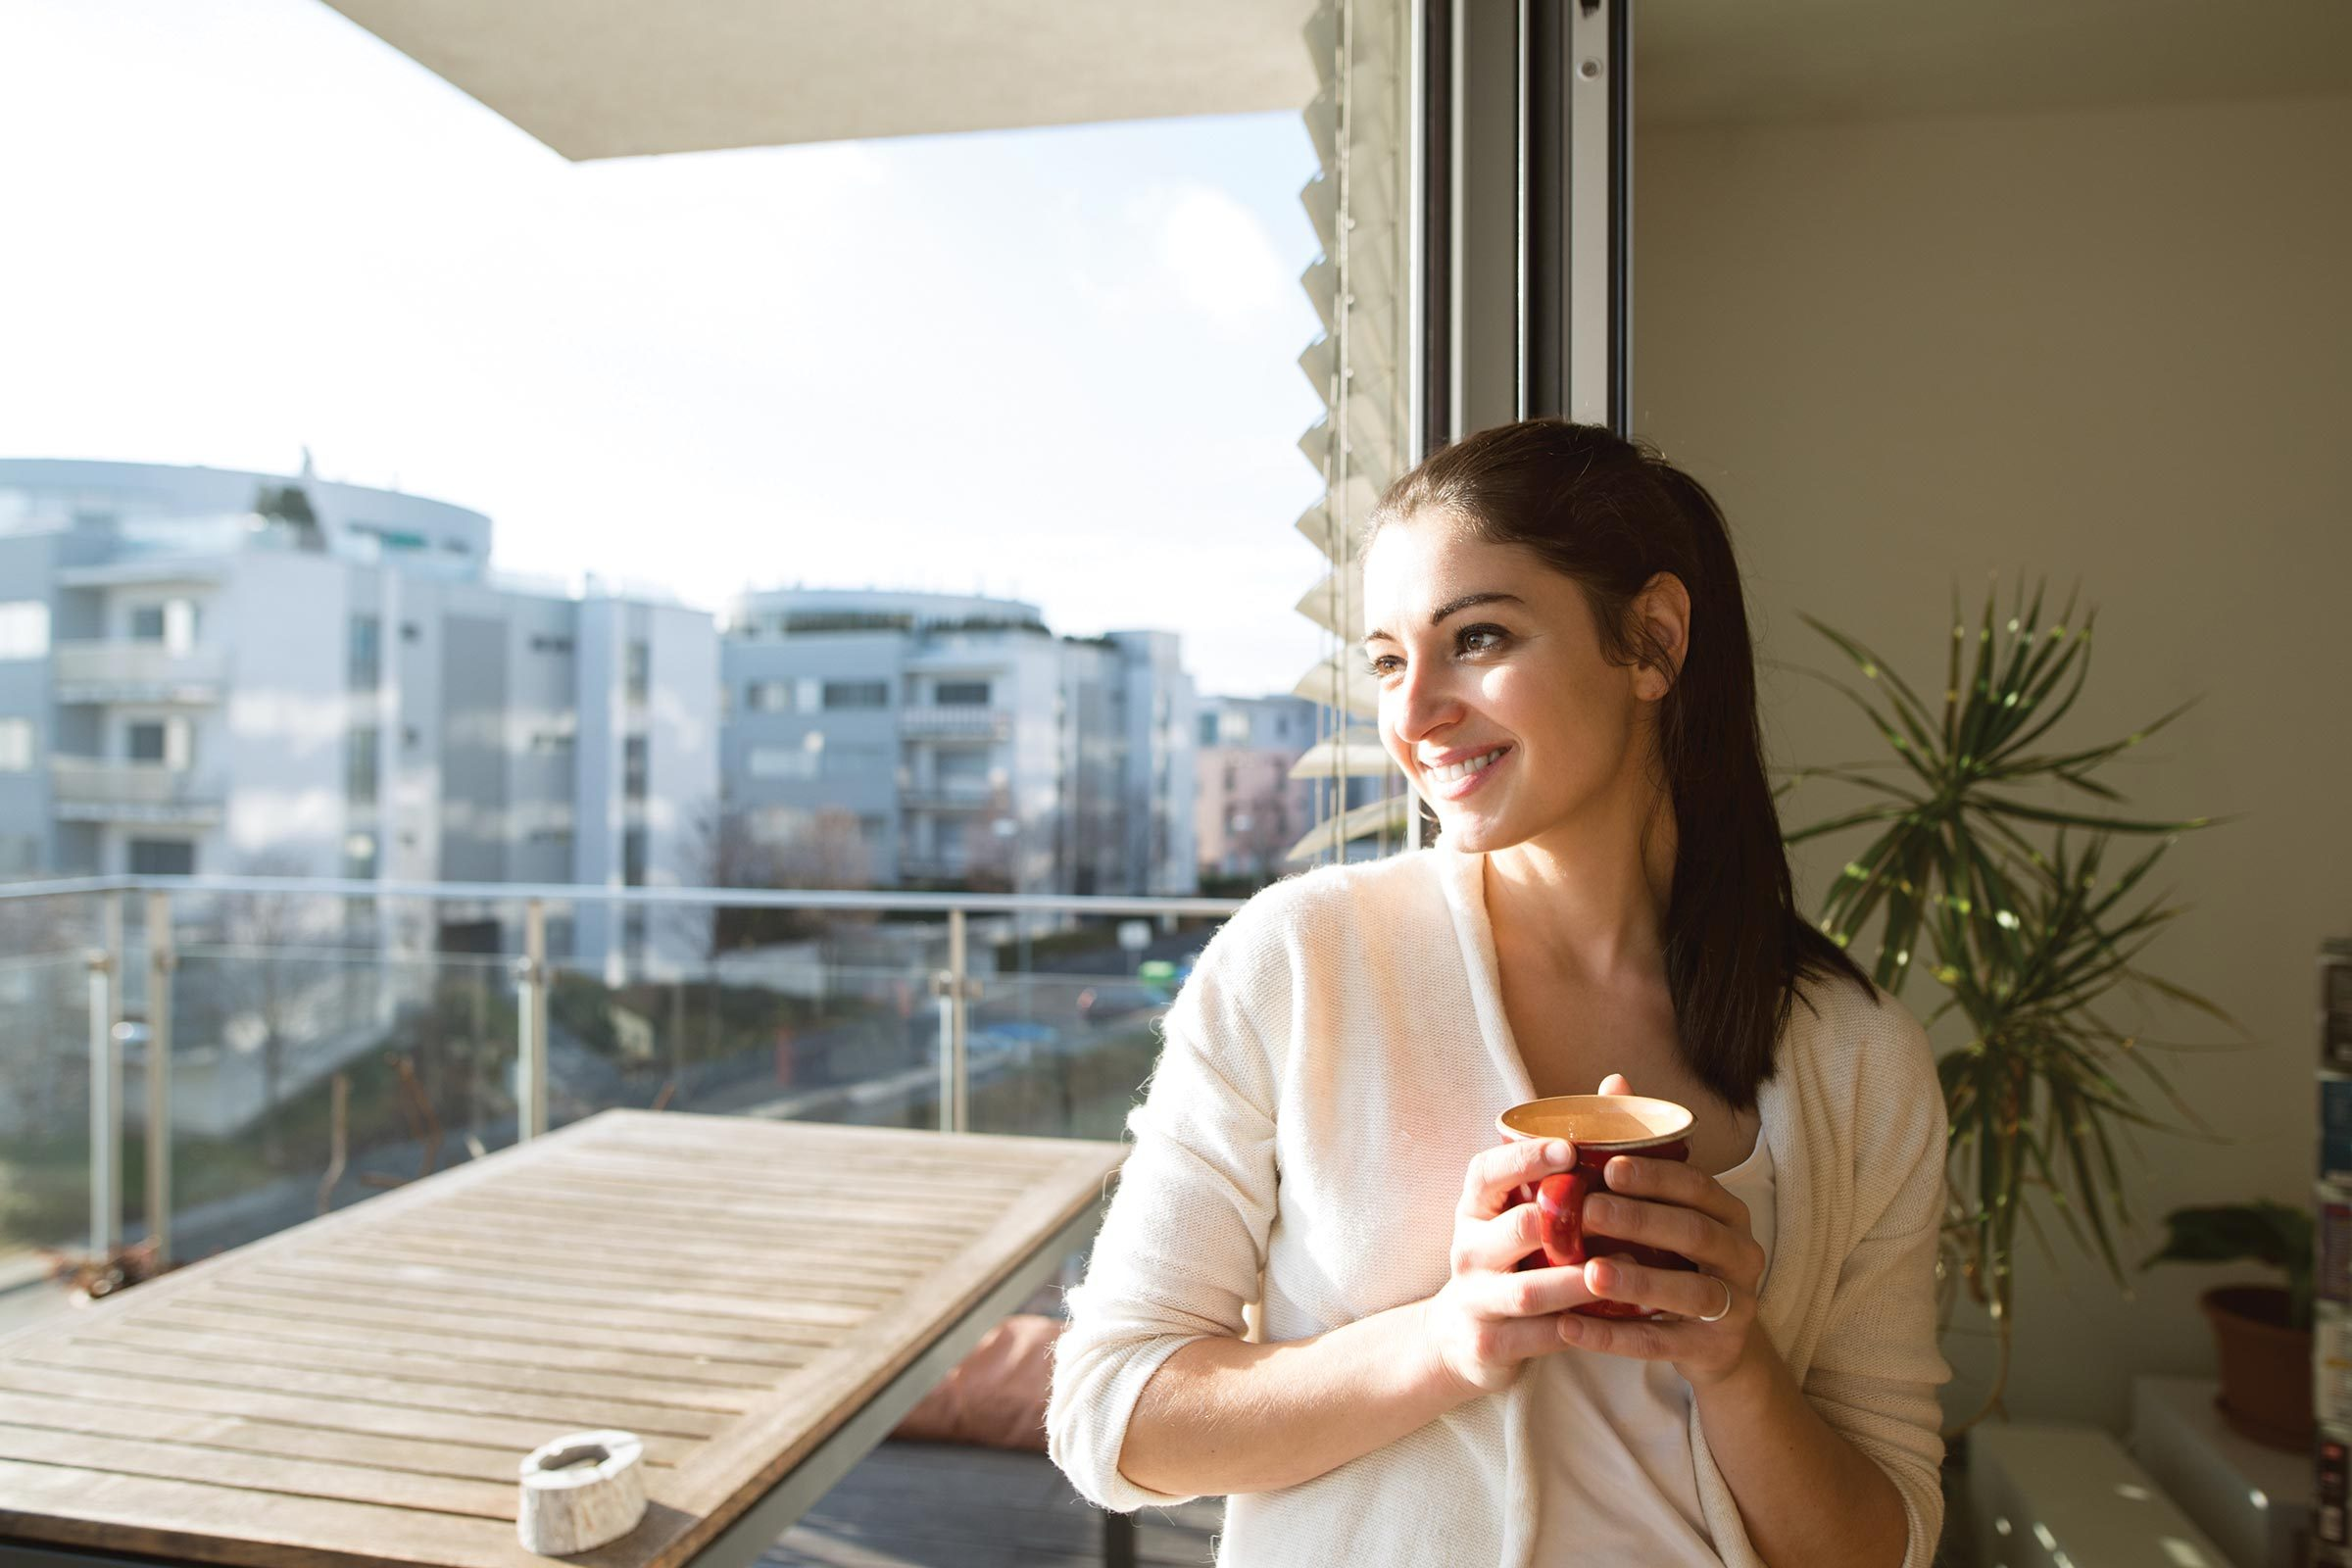 woman relax cup balcony sun